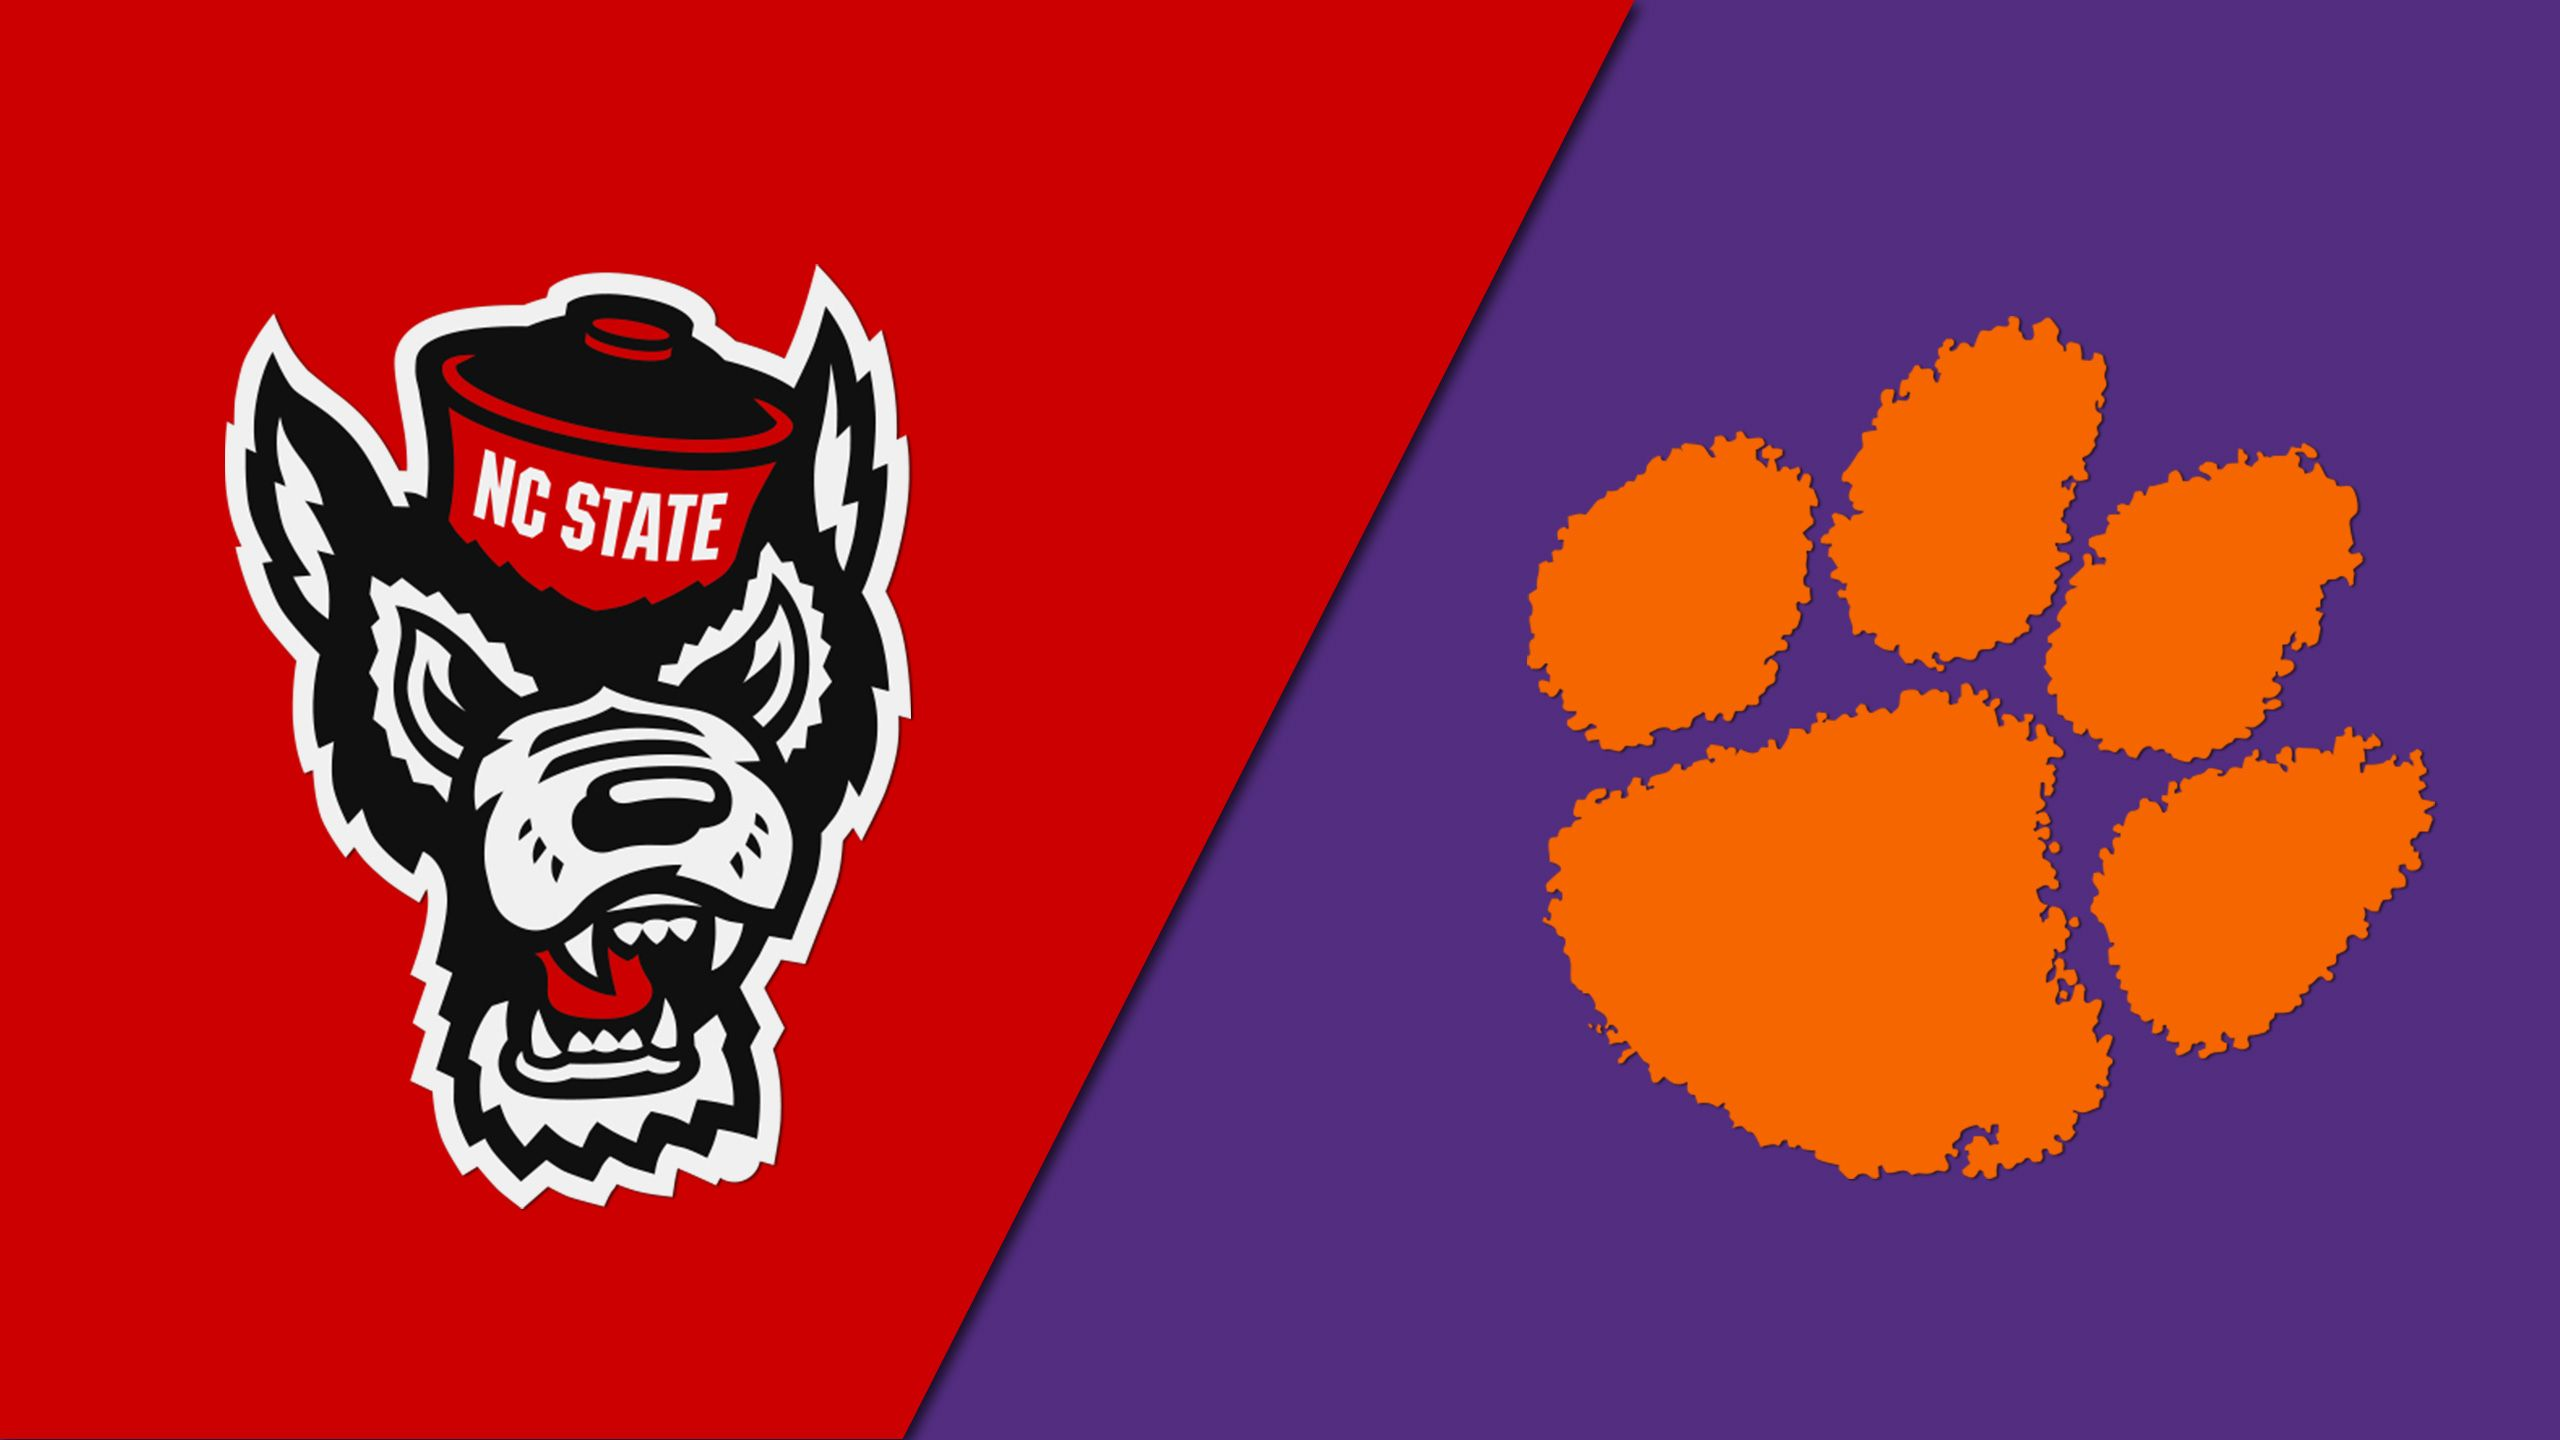 Command Center - #16 NC State vs. #3 Clemson (Football)